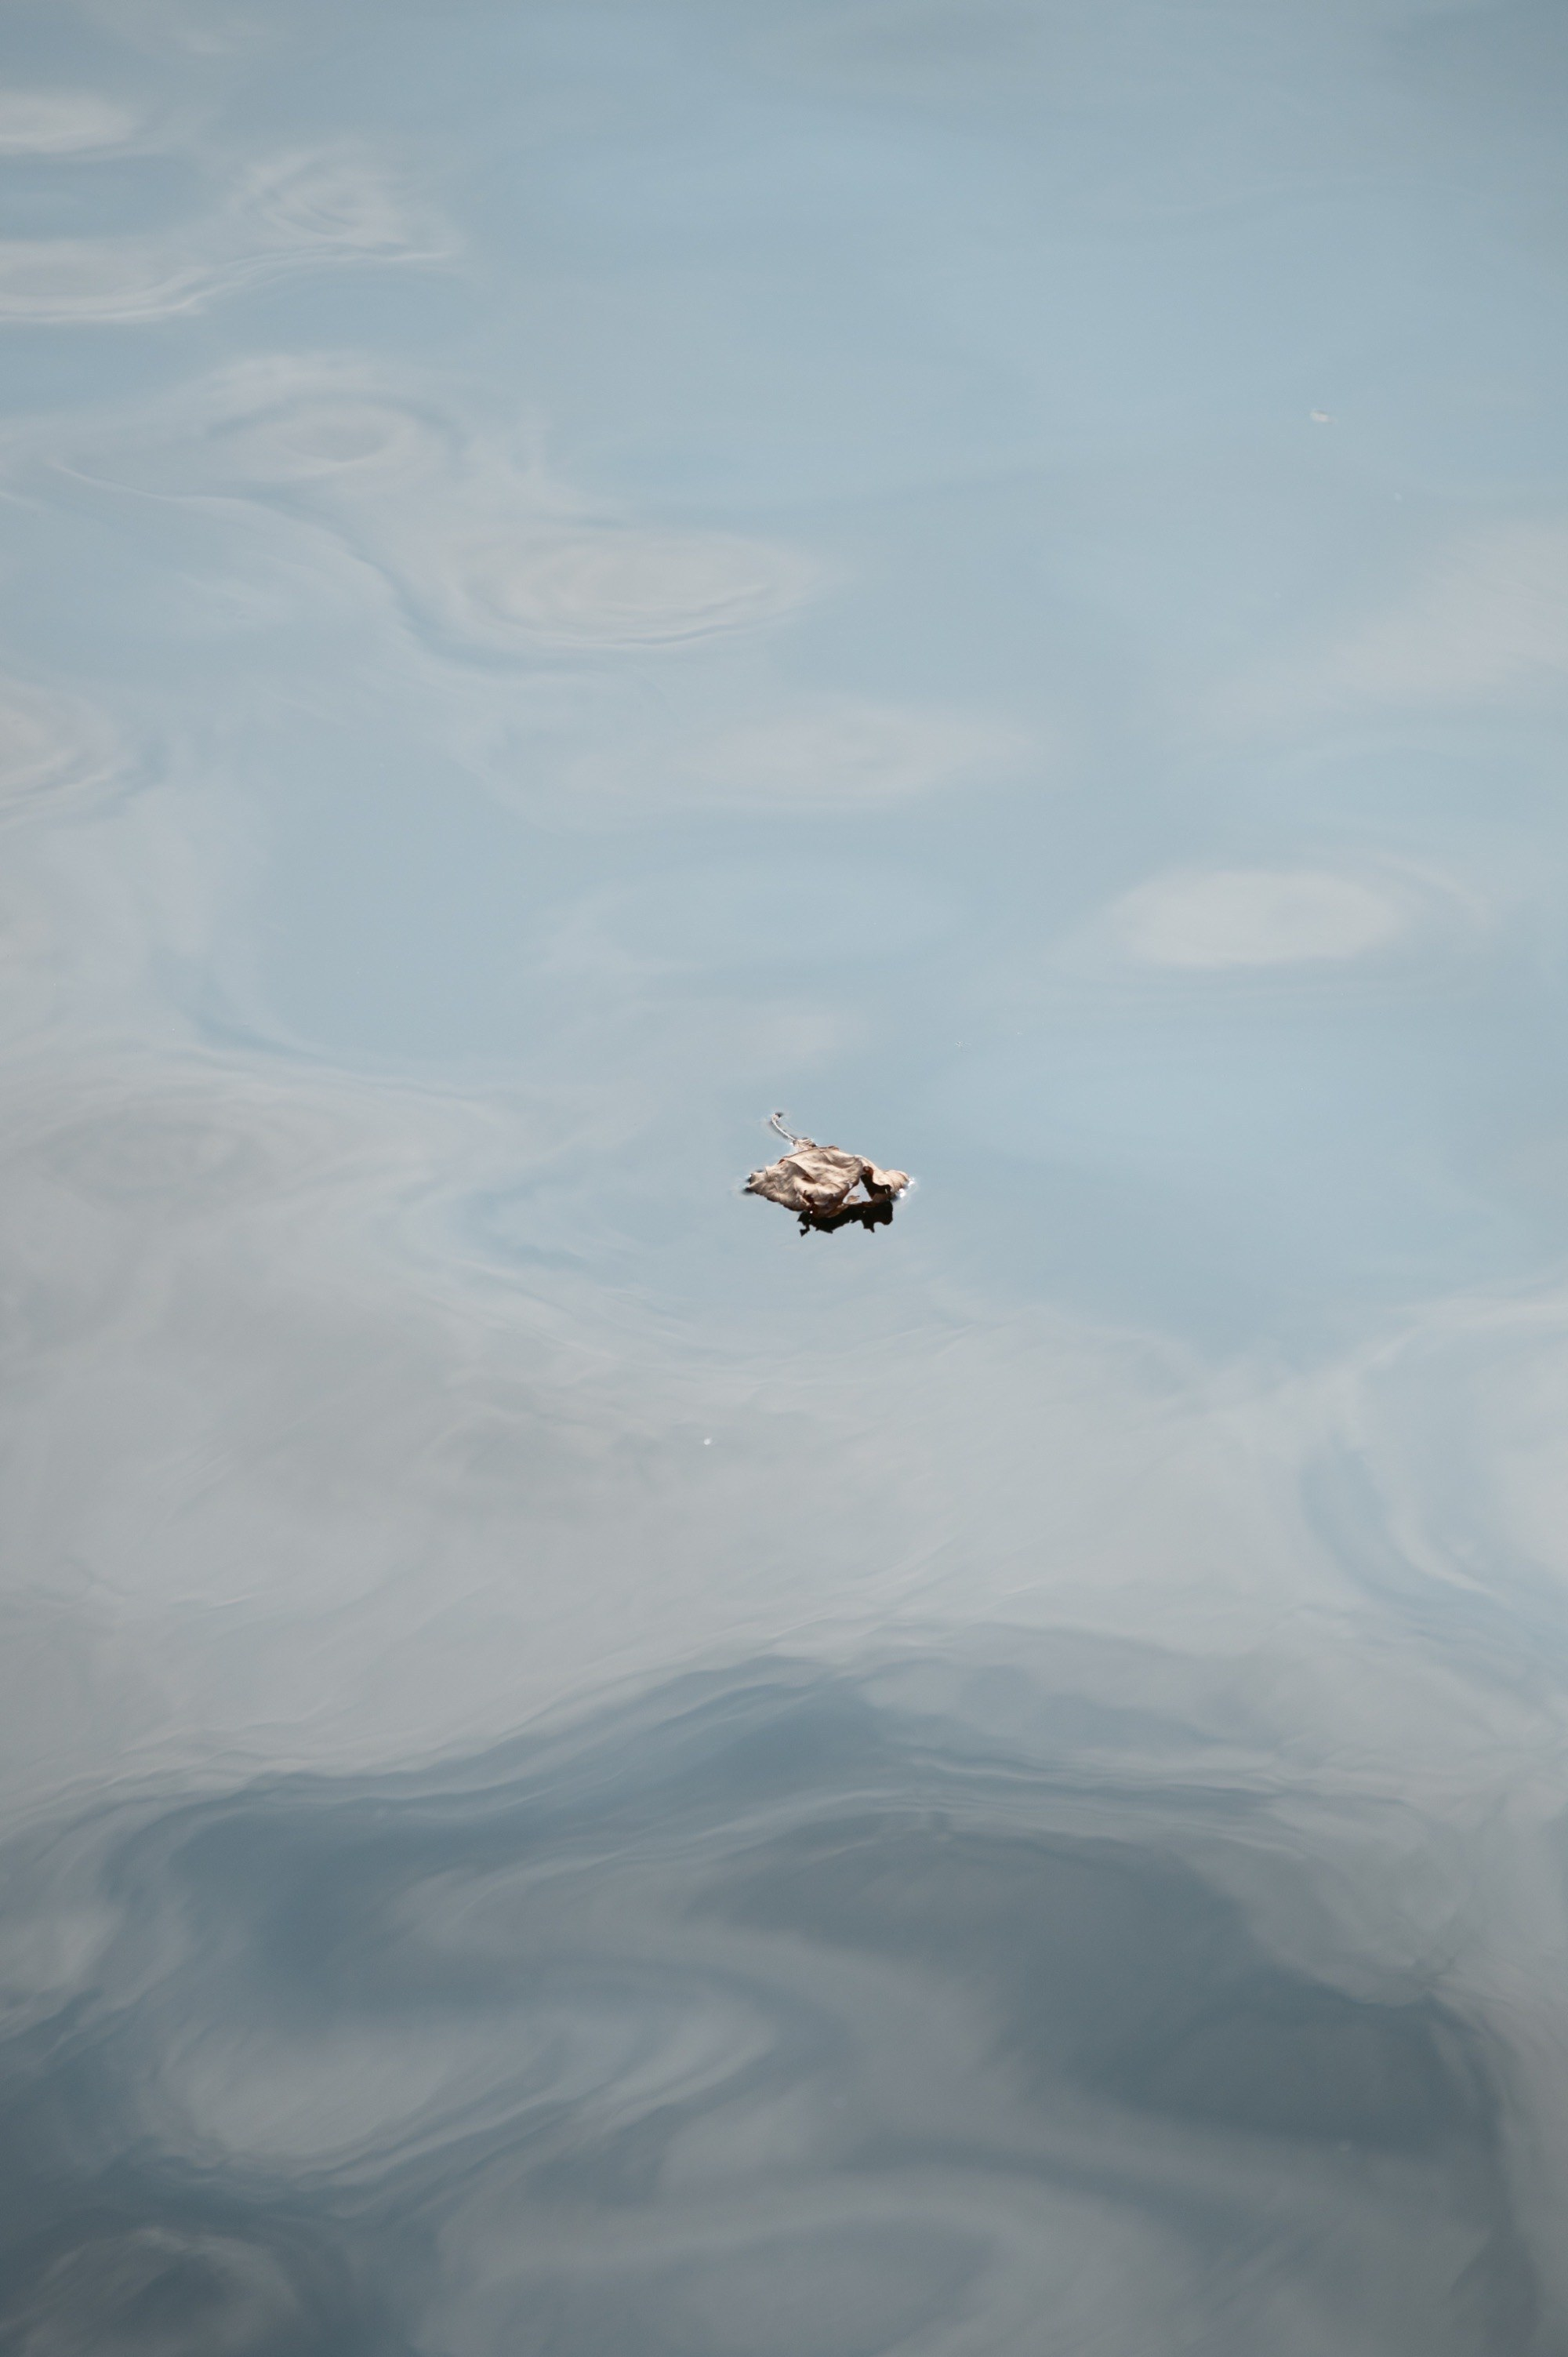 A lone leaf on the water